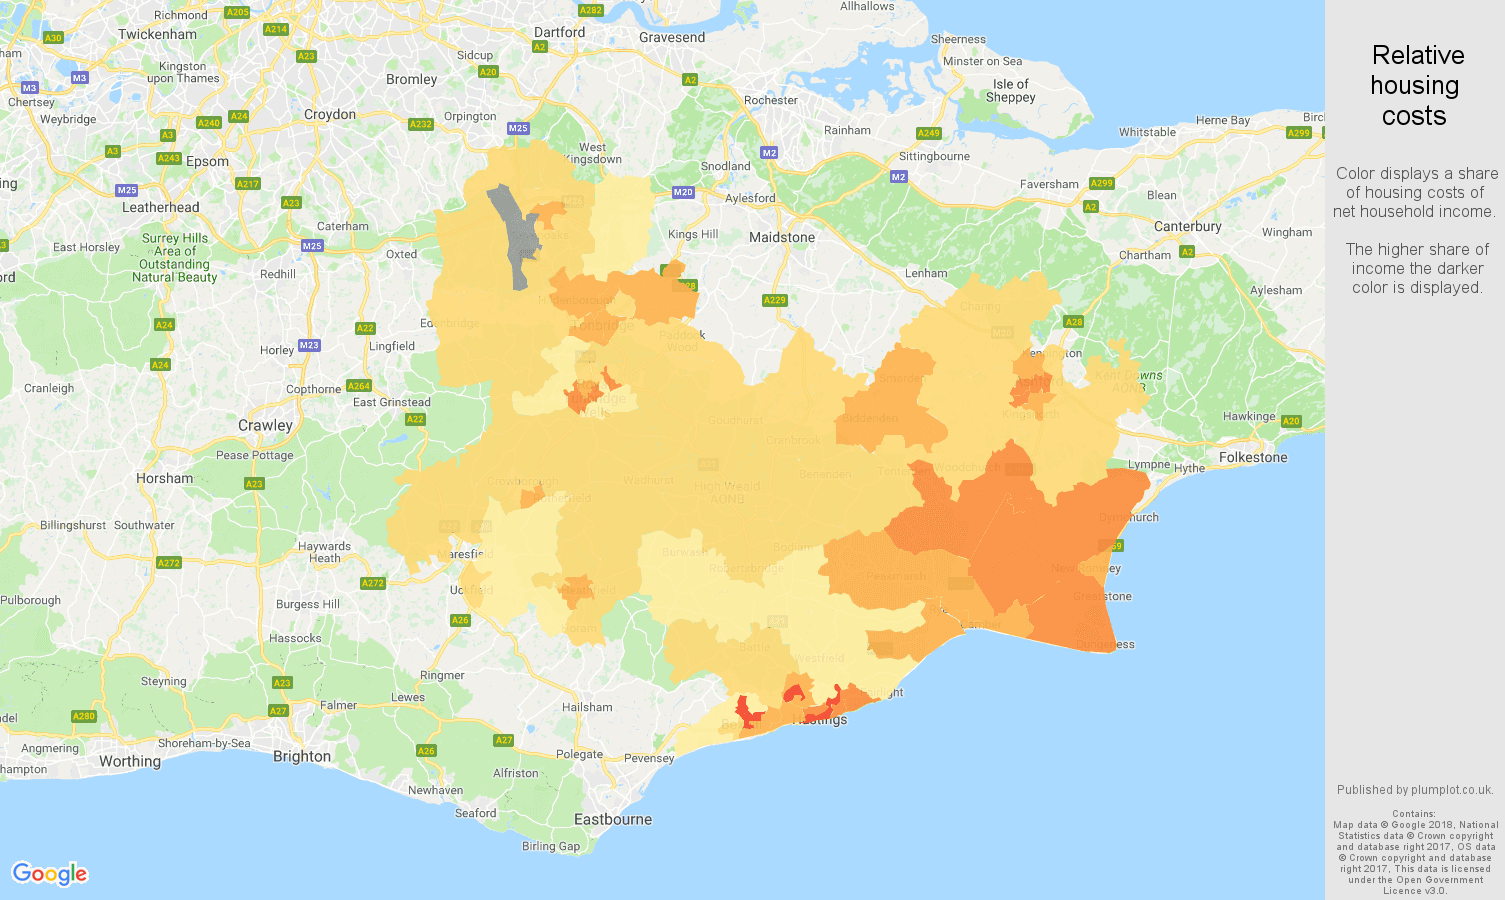 Tonbridge relative housing costs map